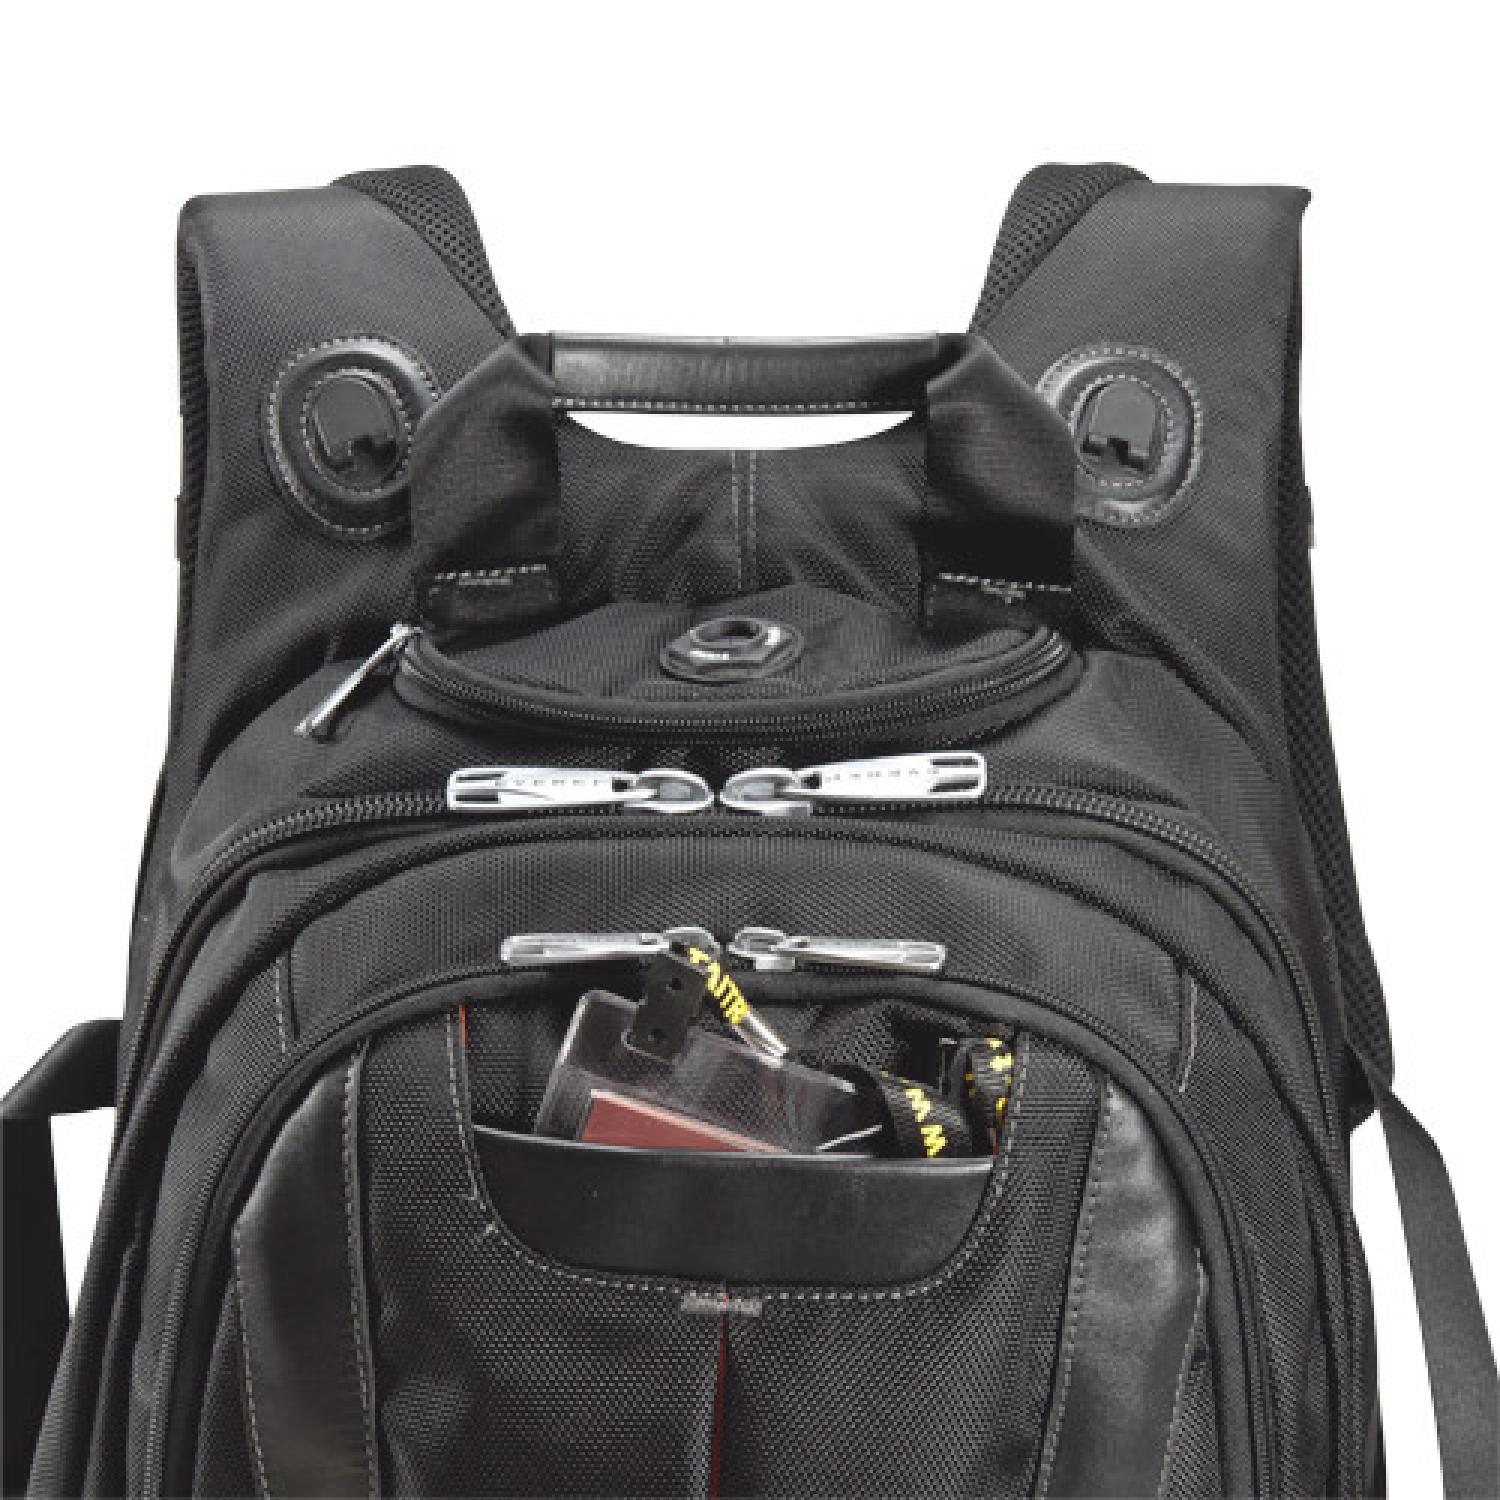 Everki EKP133 Concept Premium Checkpoint Laptop Backpack up to 17.3